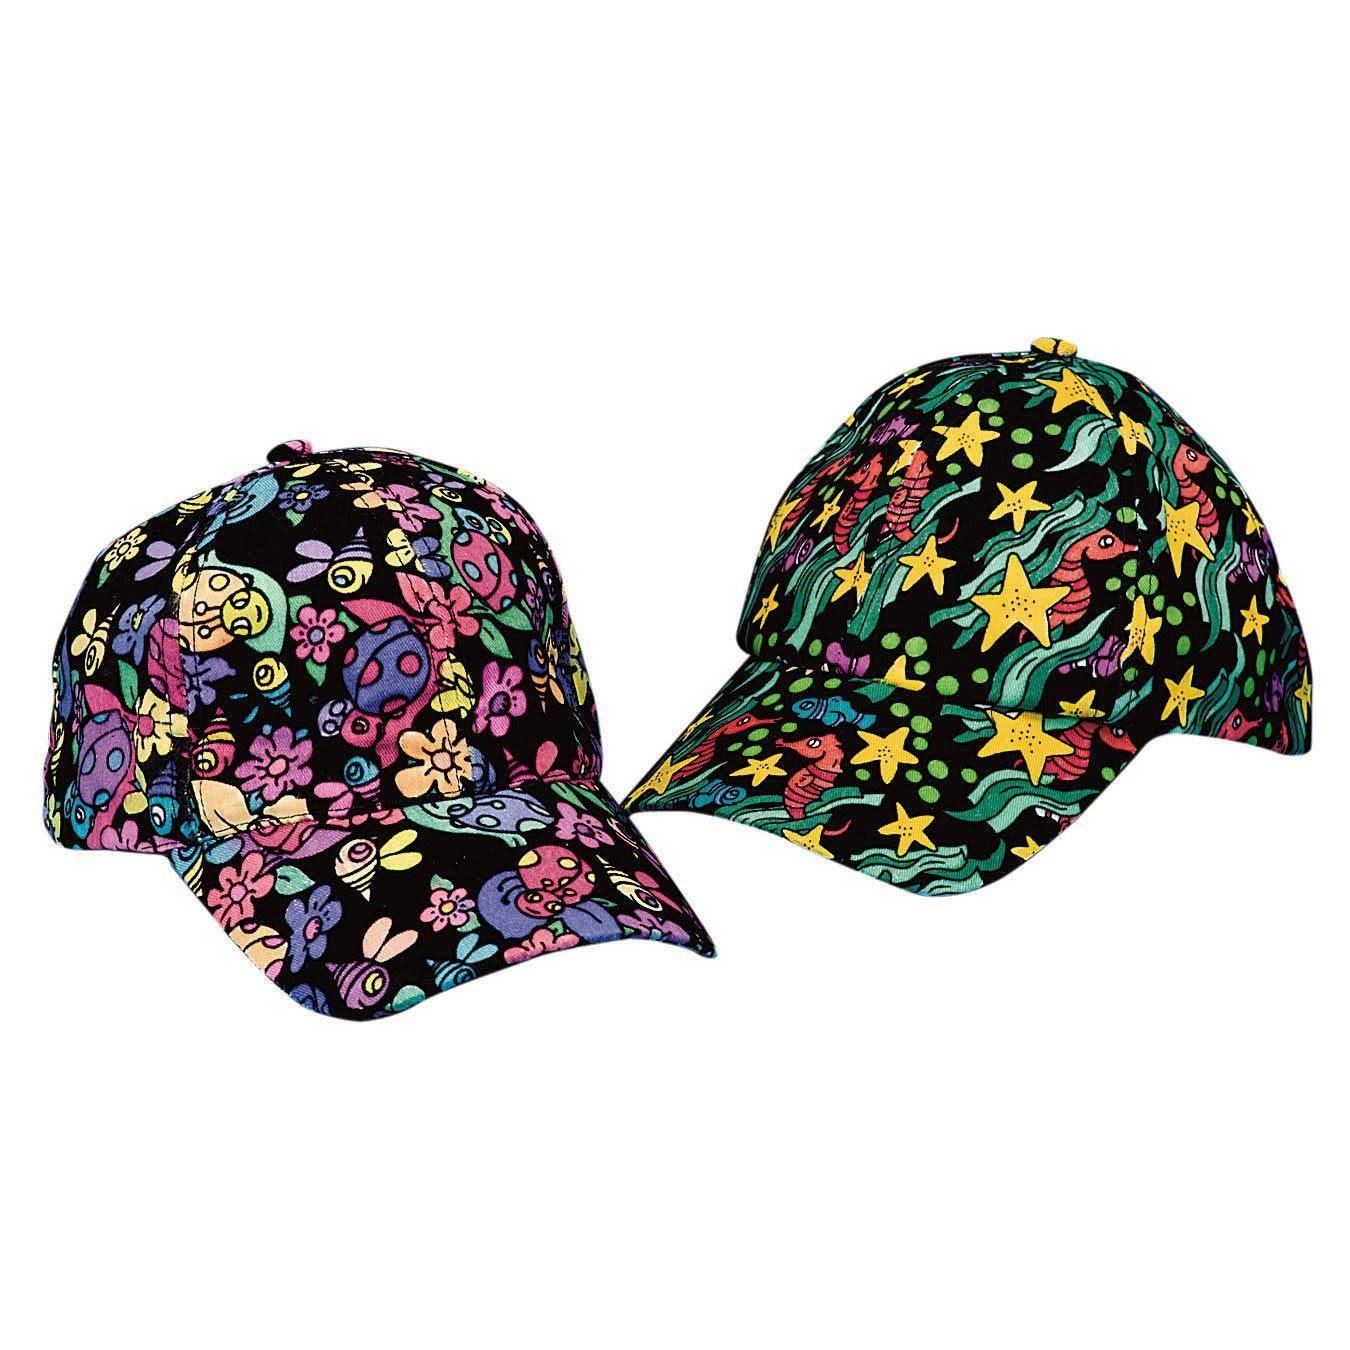 Velvet Art Baseball Caps (Pack of 12) by S&S Worldwide